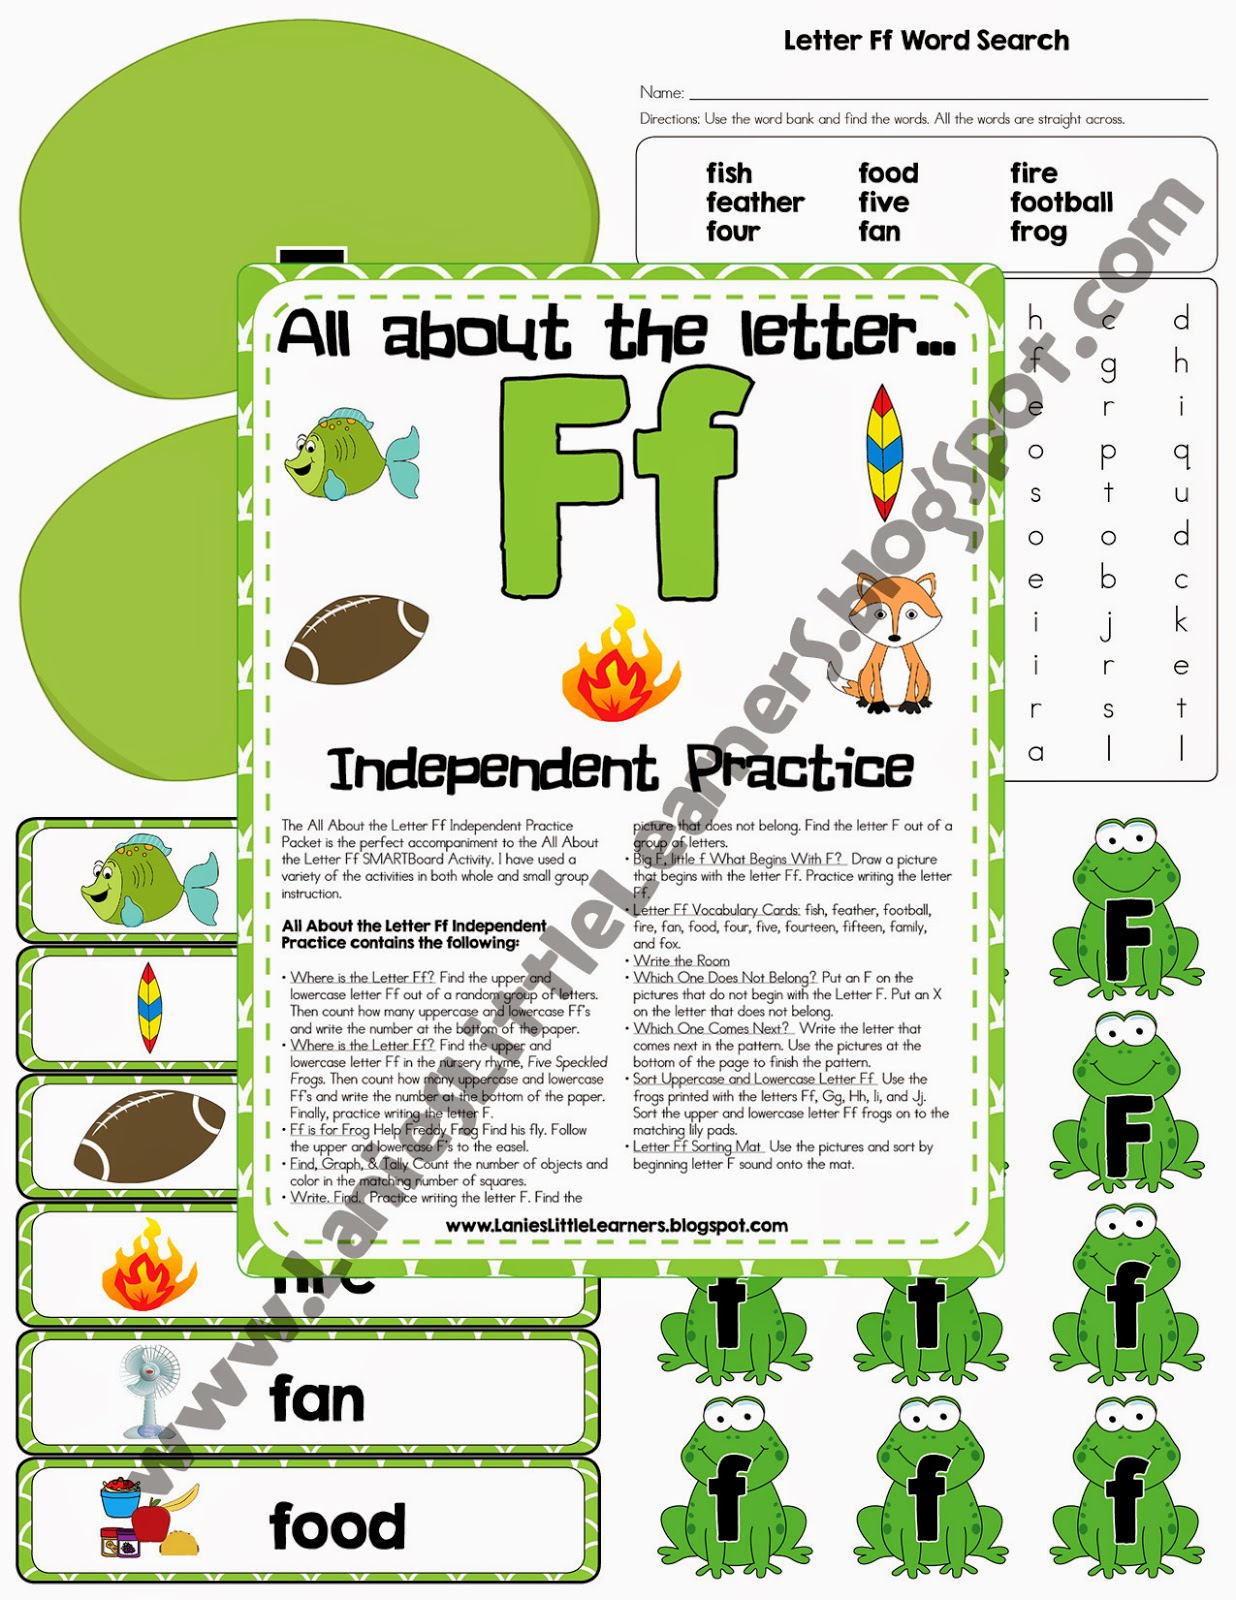 All About the Letter Ff Independent Practice